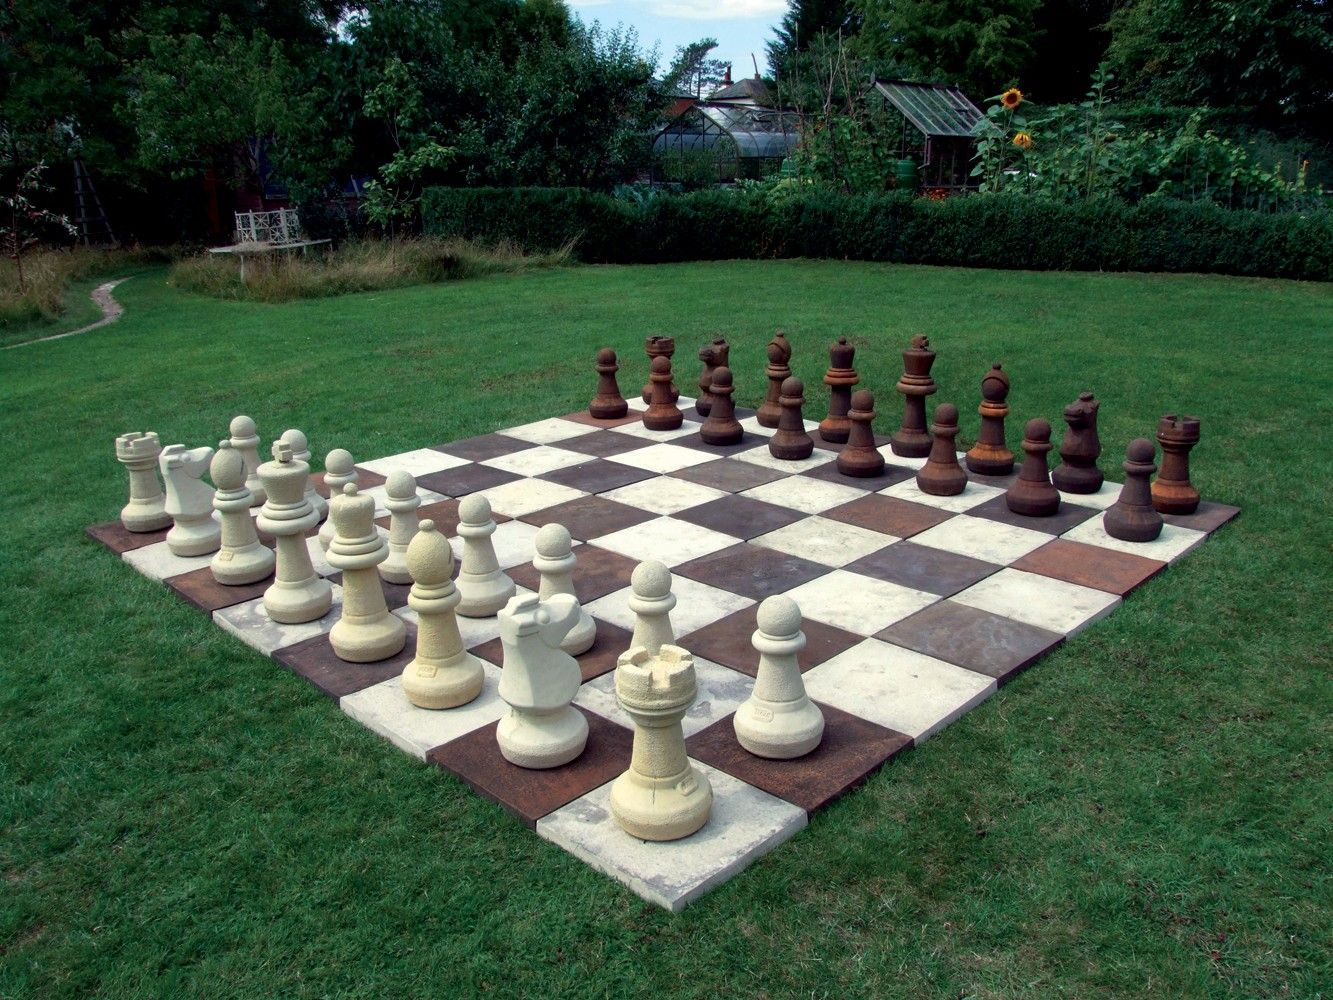 Large Garden Games Stone Chess Set Board With Pieces Stone Chess Set Marble Chess Set Chess Set